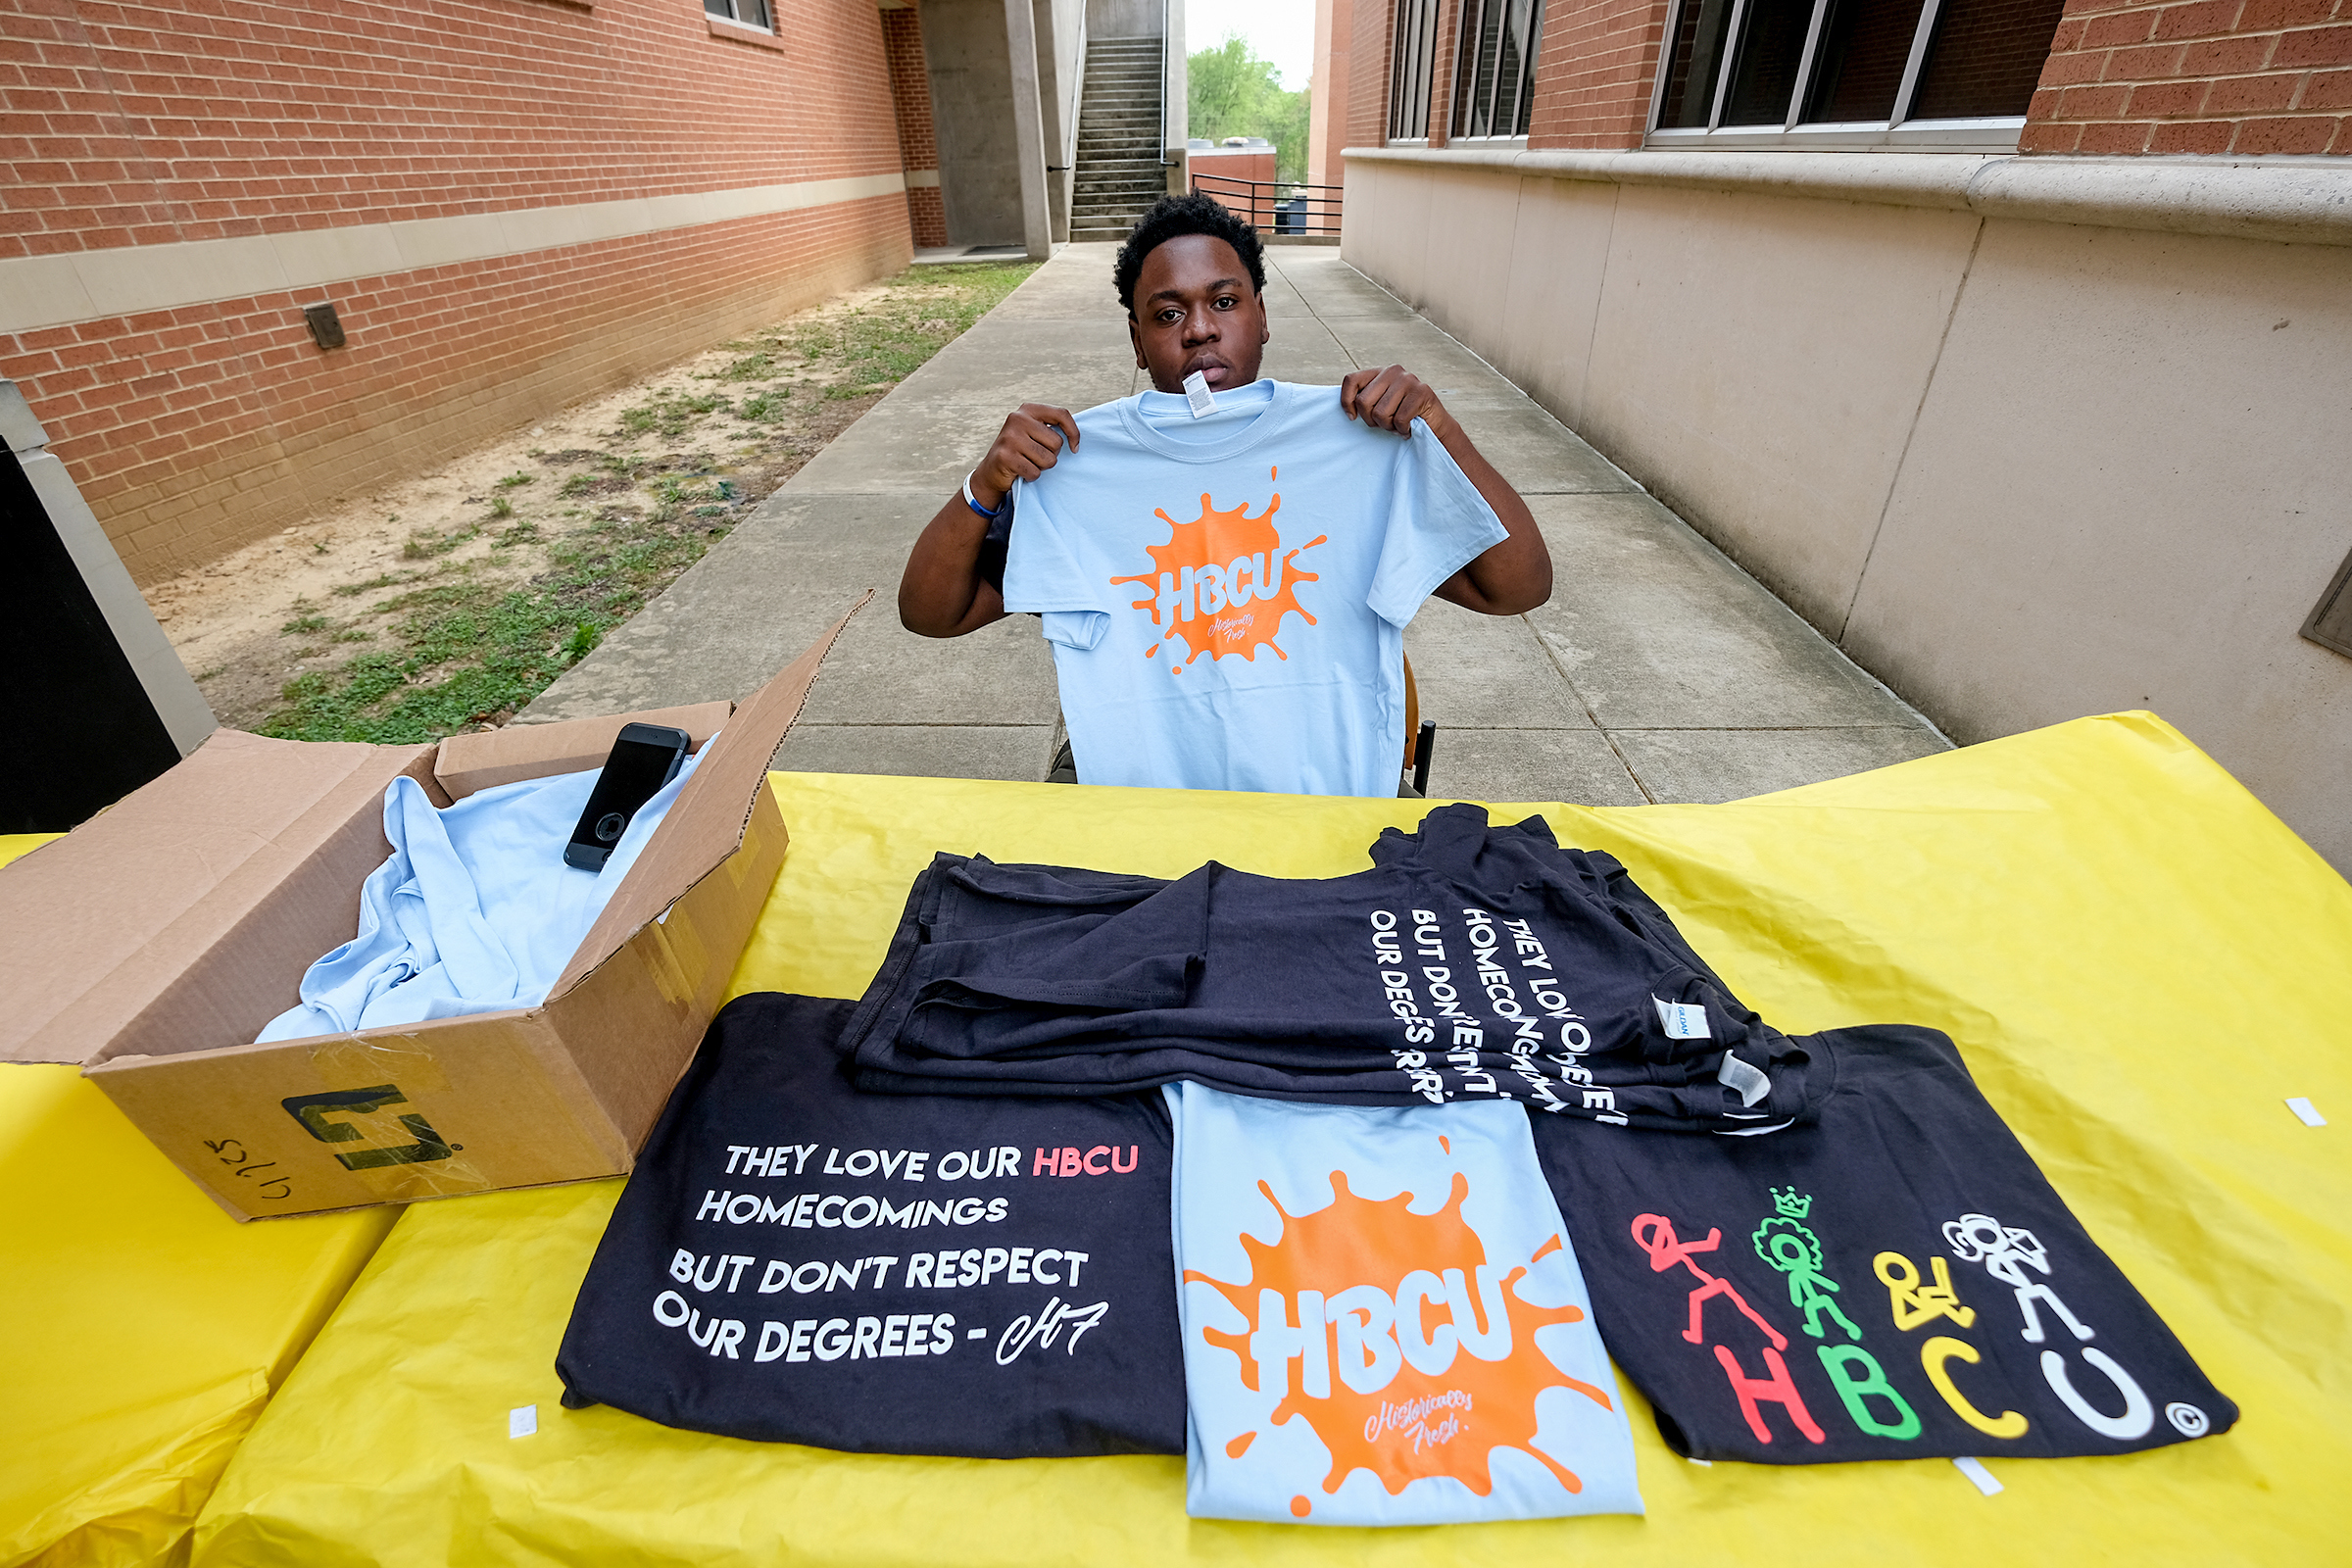 Historically Fresh, the student-founded clothing label whose goal is to spotlight HBCUs and HBCU culture, was on display at the event.